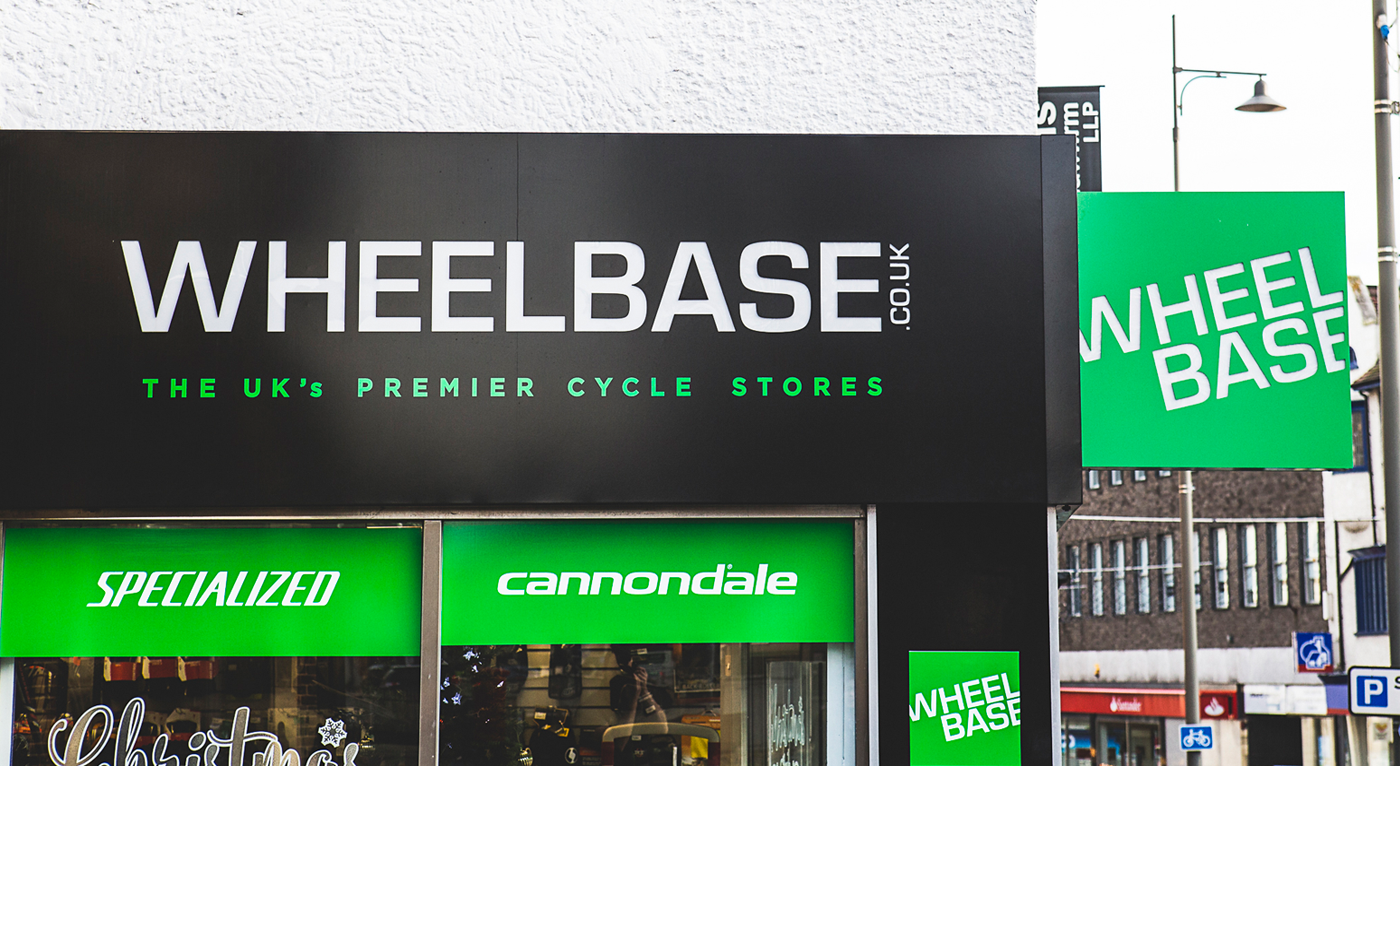 WHEELBASE North East